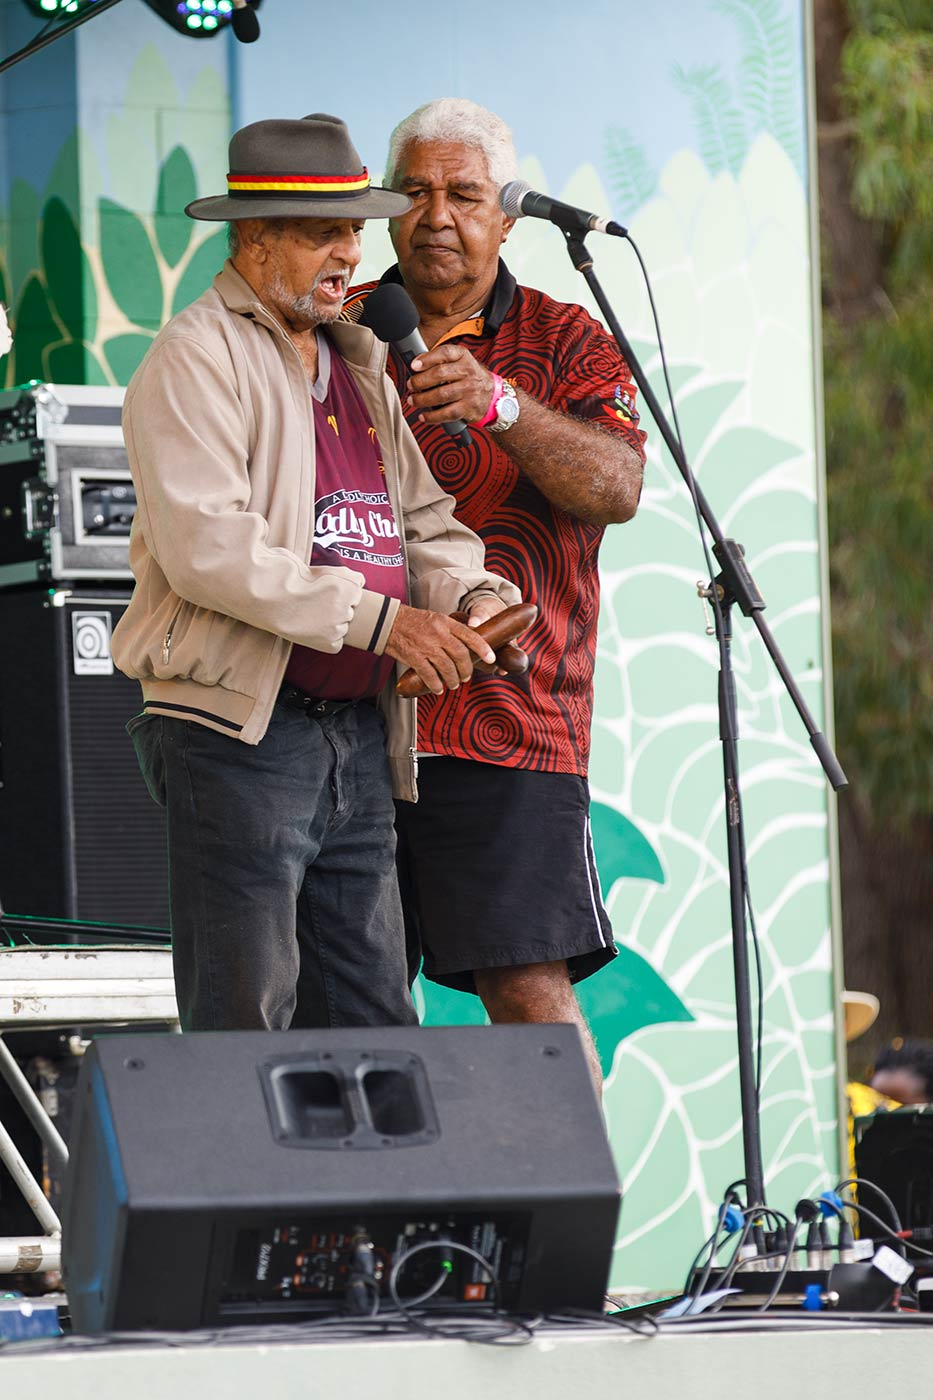 Colour photo of two men on a stage. One of them is singing into a microphone and holding instruments that are wooden sticks. - click to view larger image